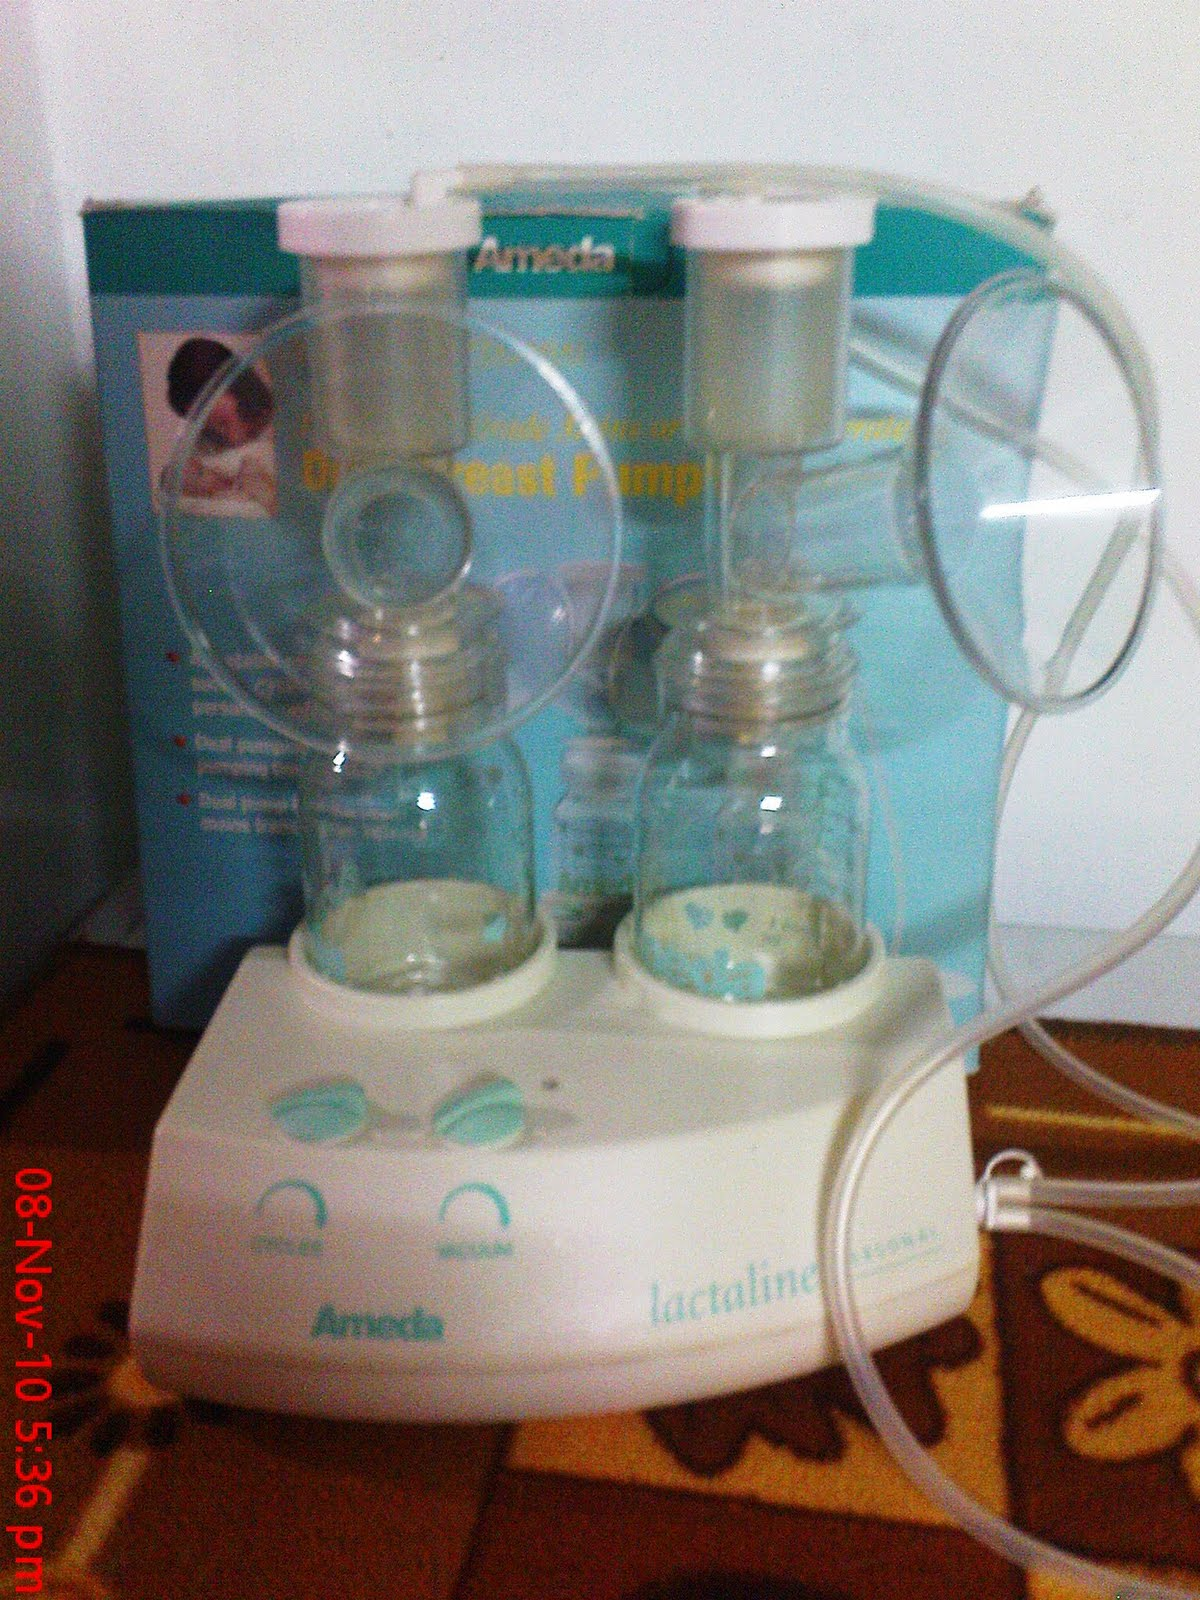 Colourful Ameda Lactaline Dual Electric Breast Pump